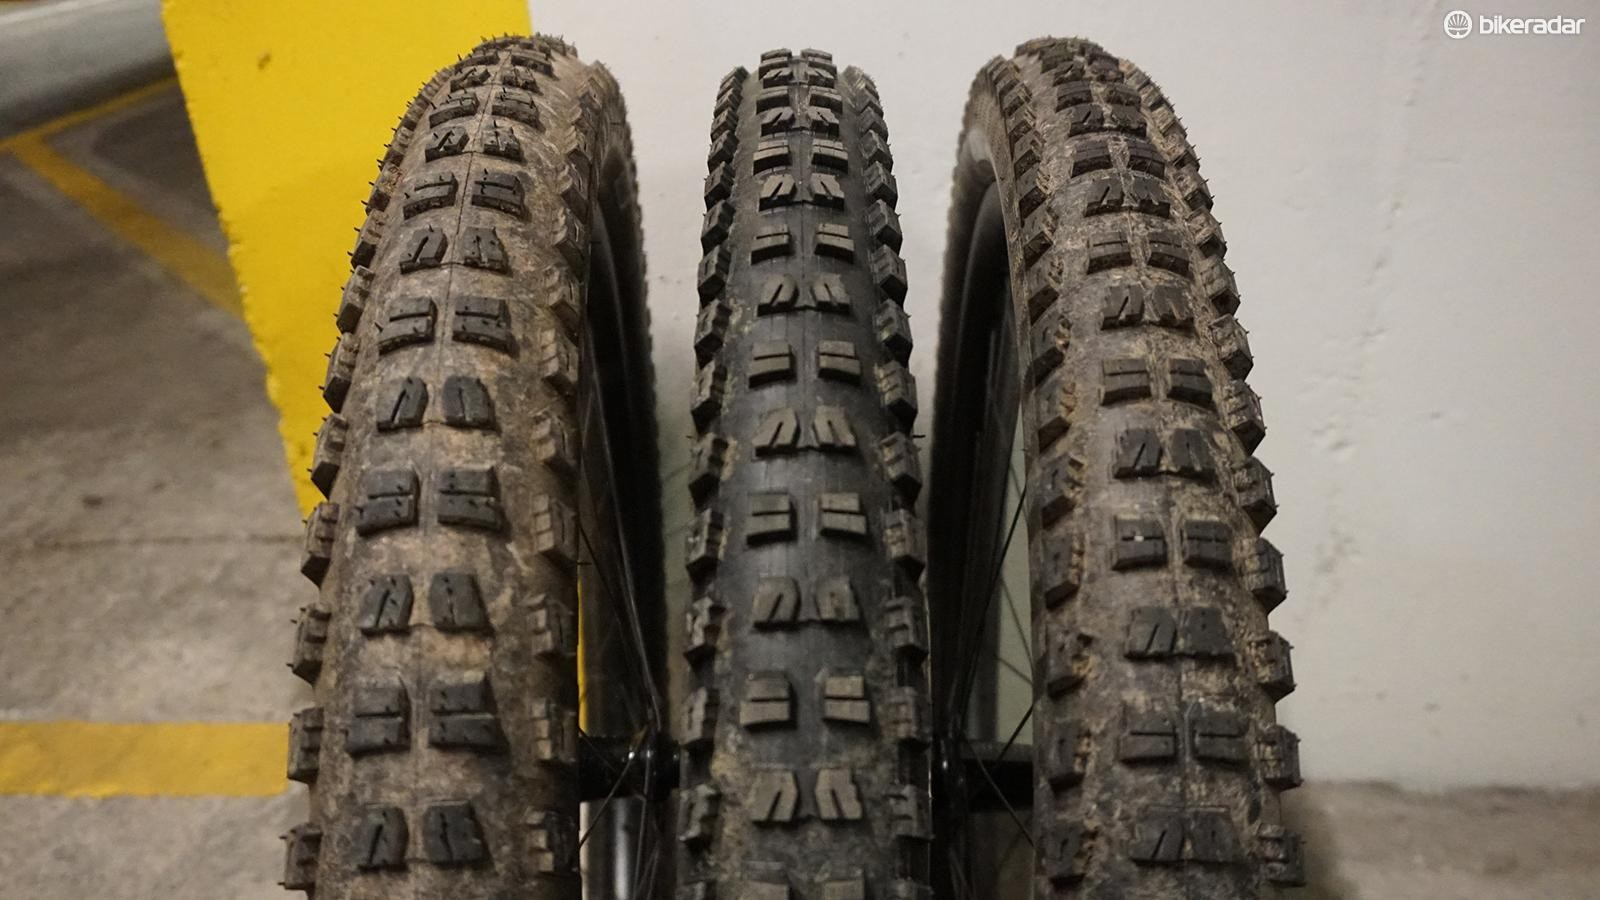 """The 2.6"""" and 2.8"""" tyres come up narrower than advertised on these 33mm rims"""